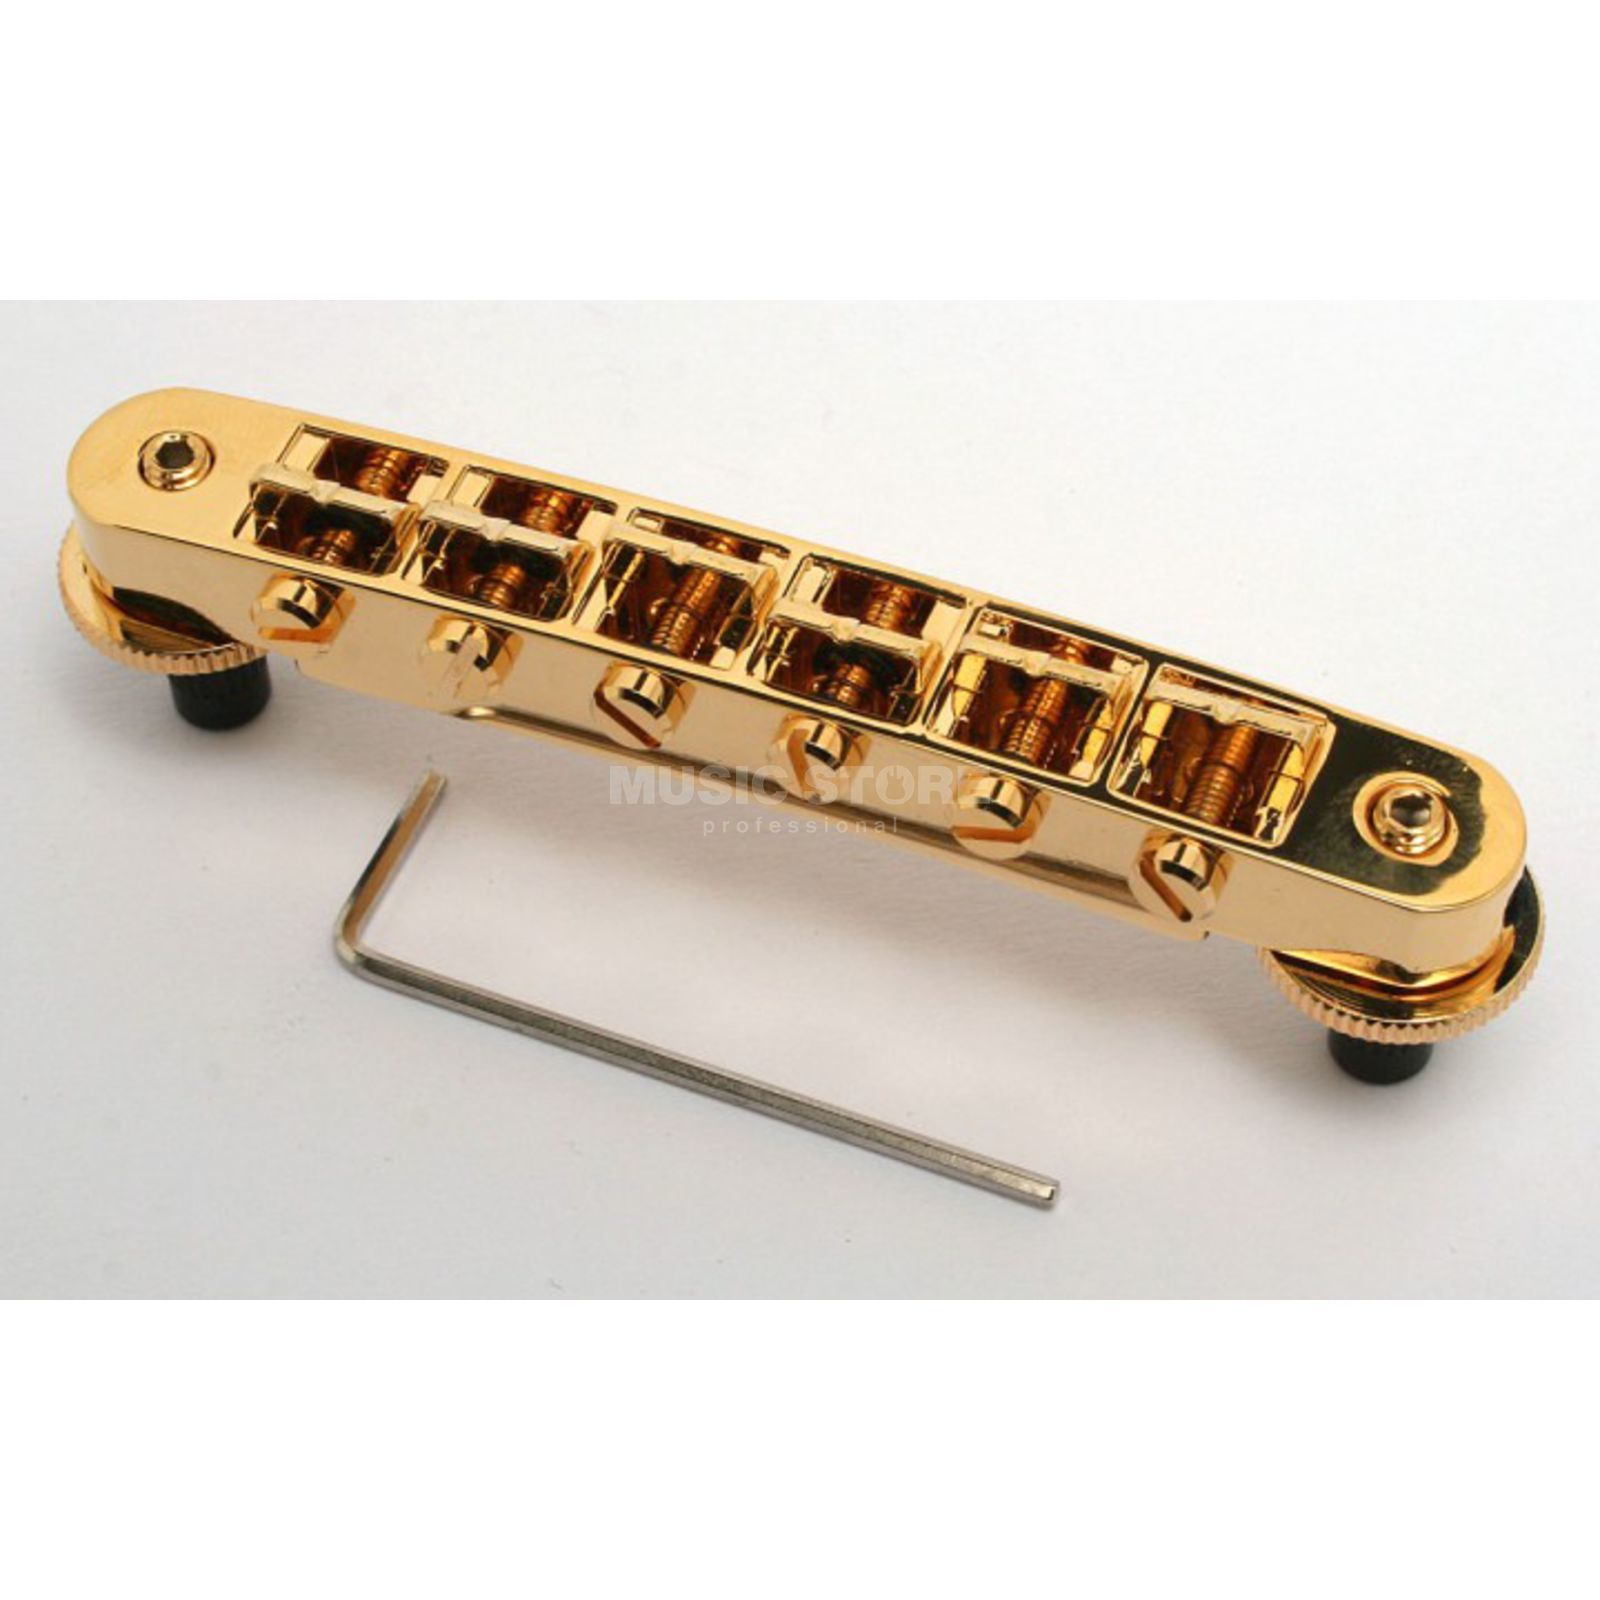 Göldo Duesenberg Steel Saddle Bridge Gold HWDDG Produktbild